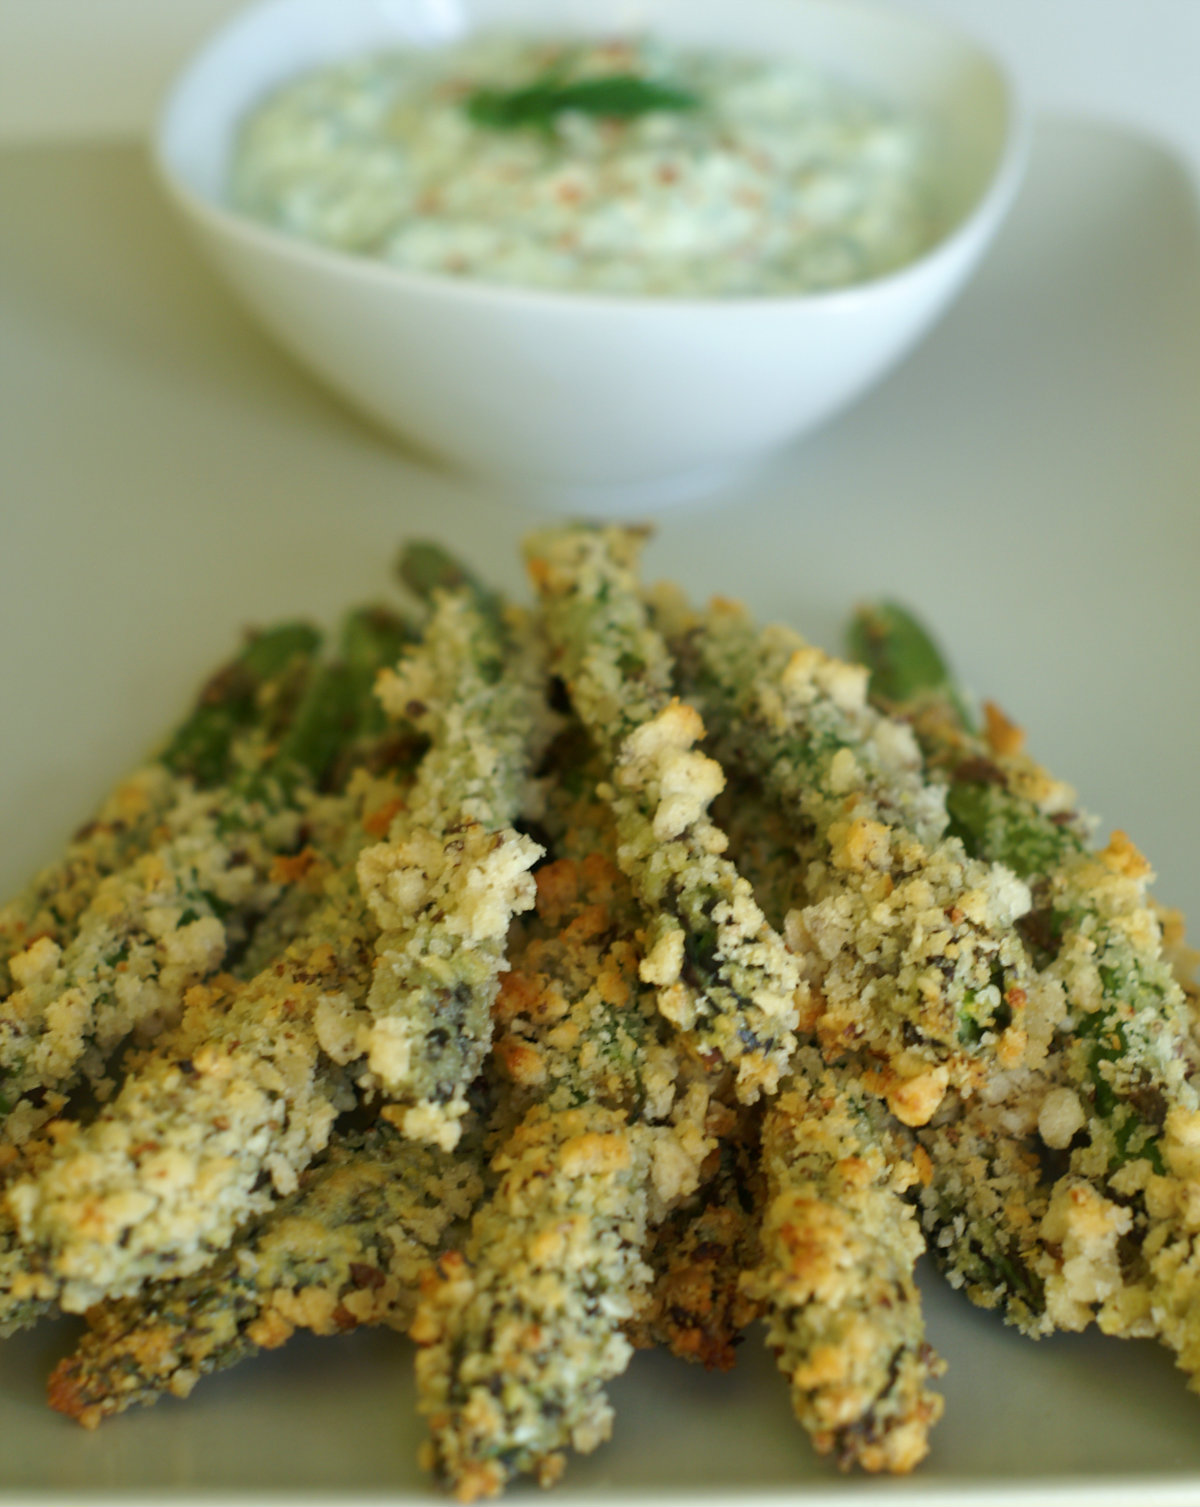 Low Calorie Crunchy Asparagus with Ranch Dip